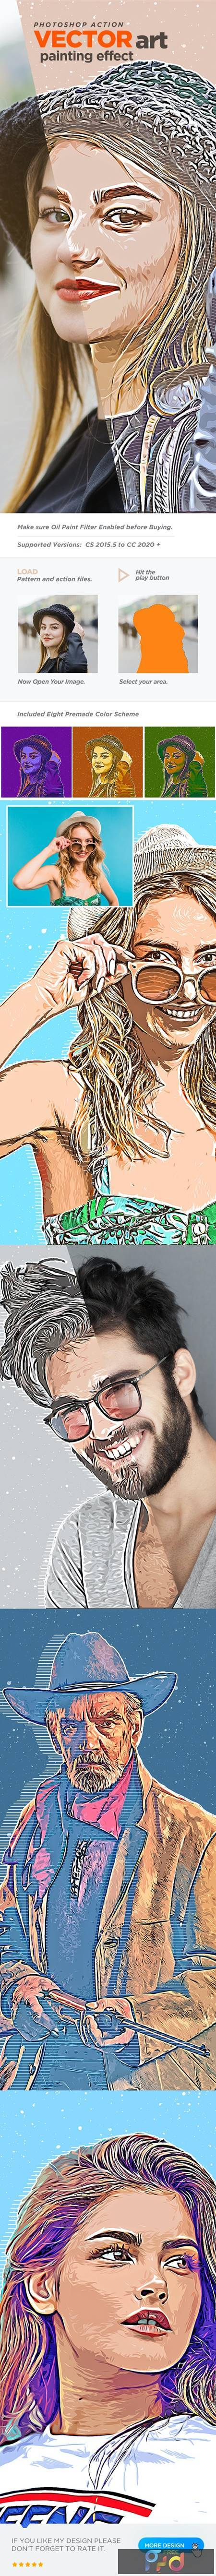 Vector Art Painting Effect Photoshop Action 27010115 1